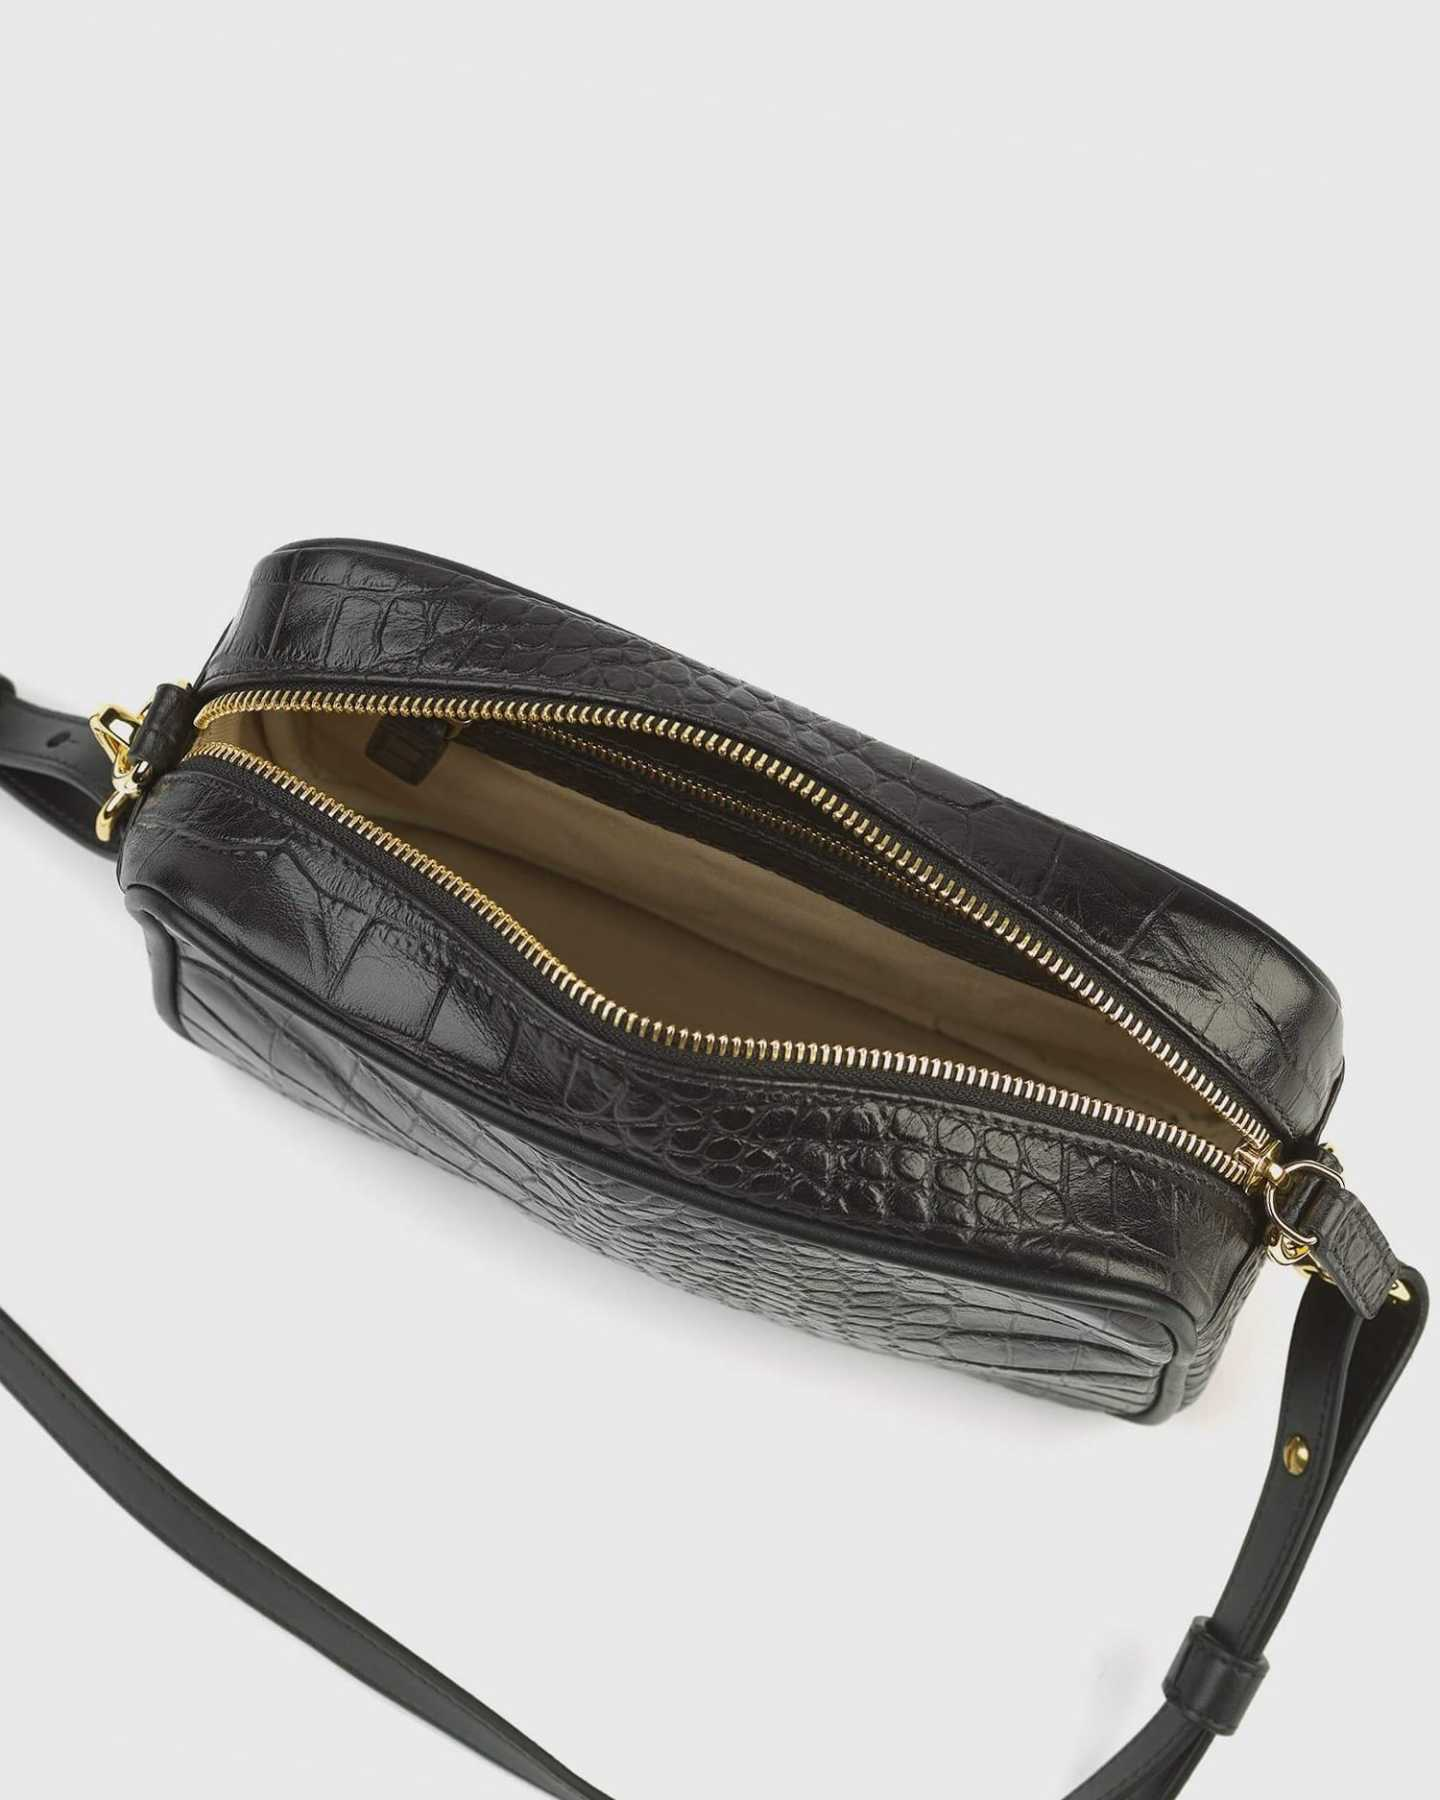 Leather crossbody bag with croco emboss design from top